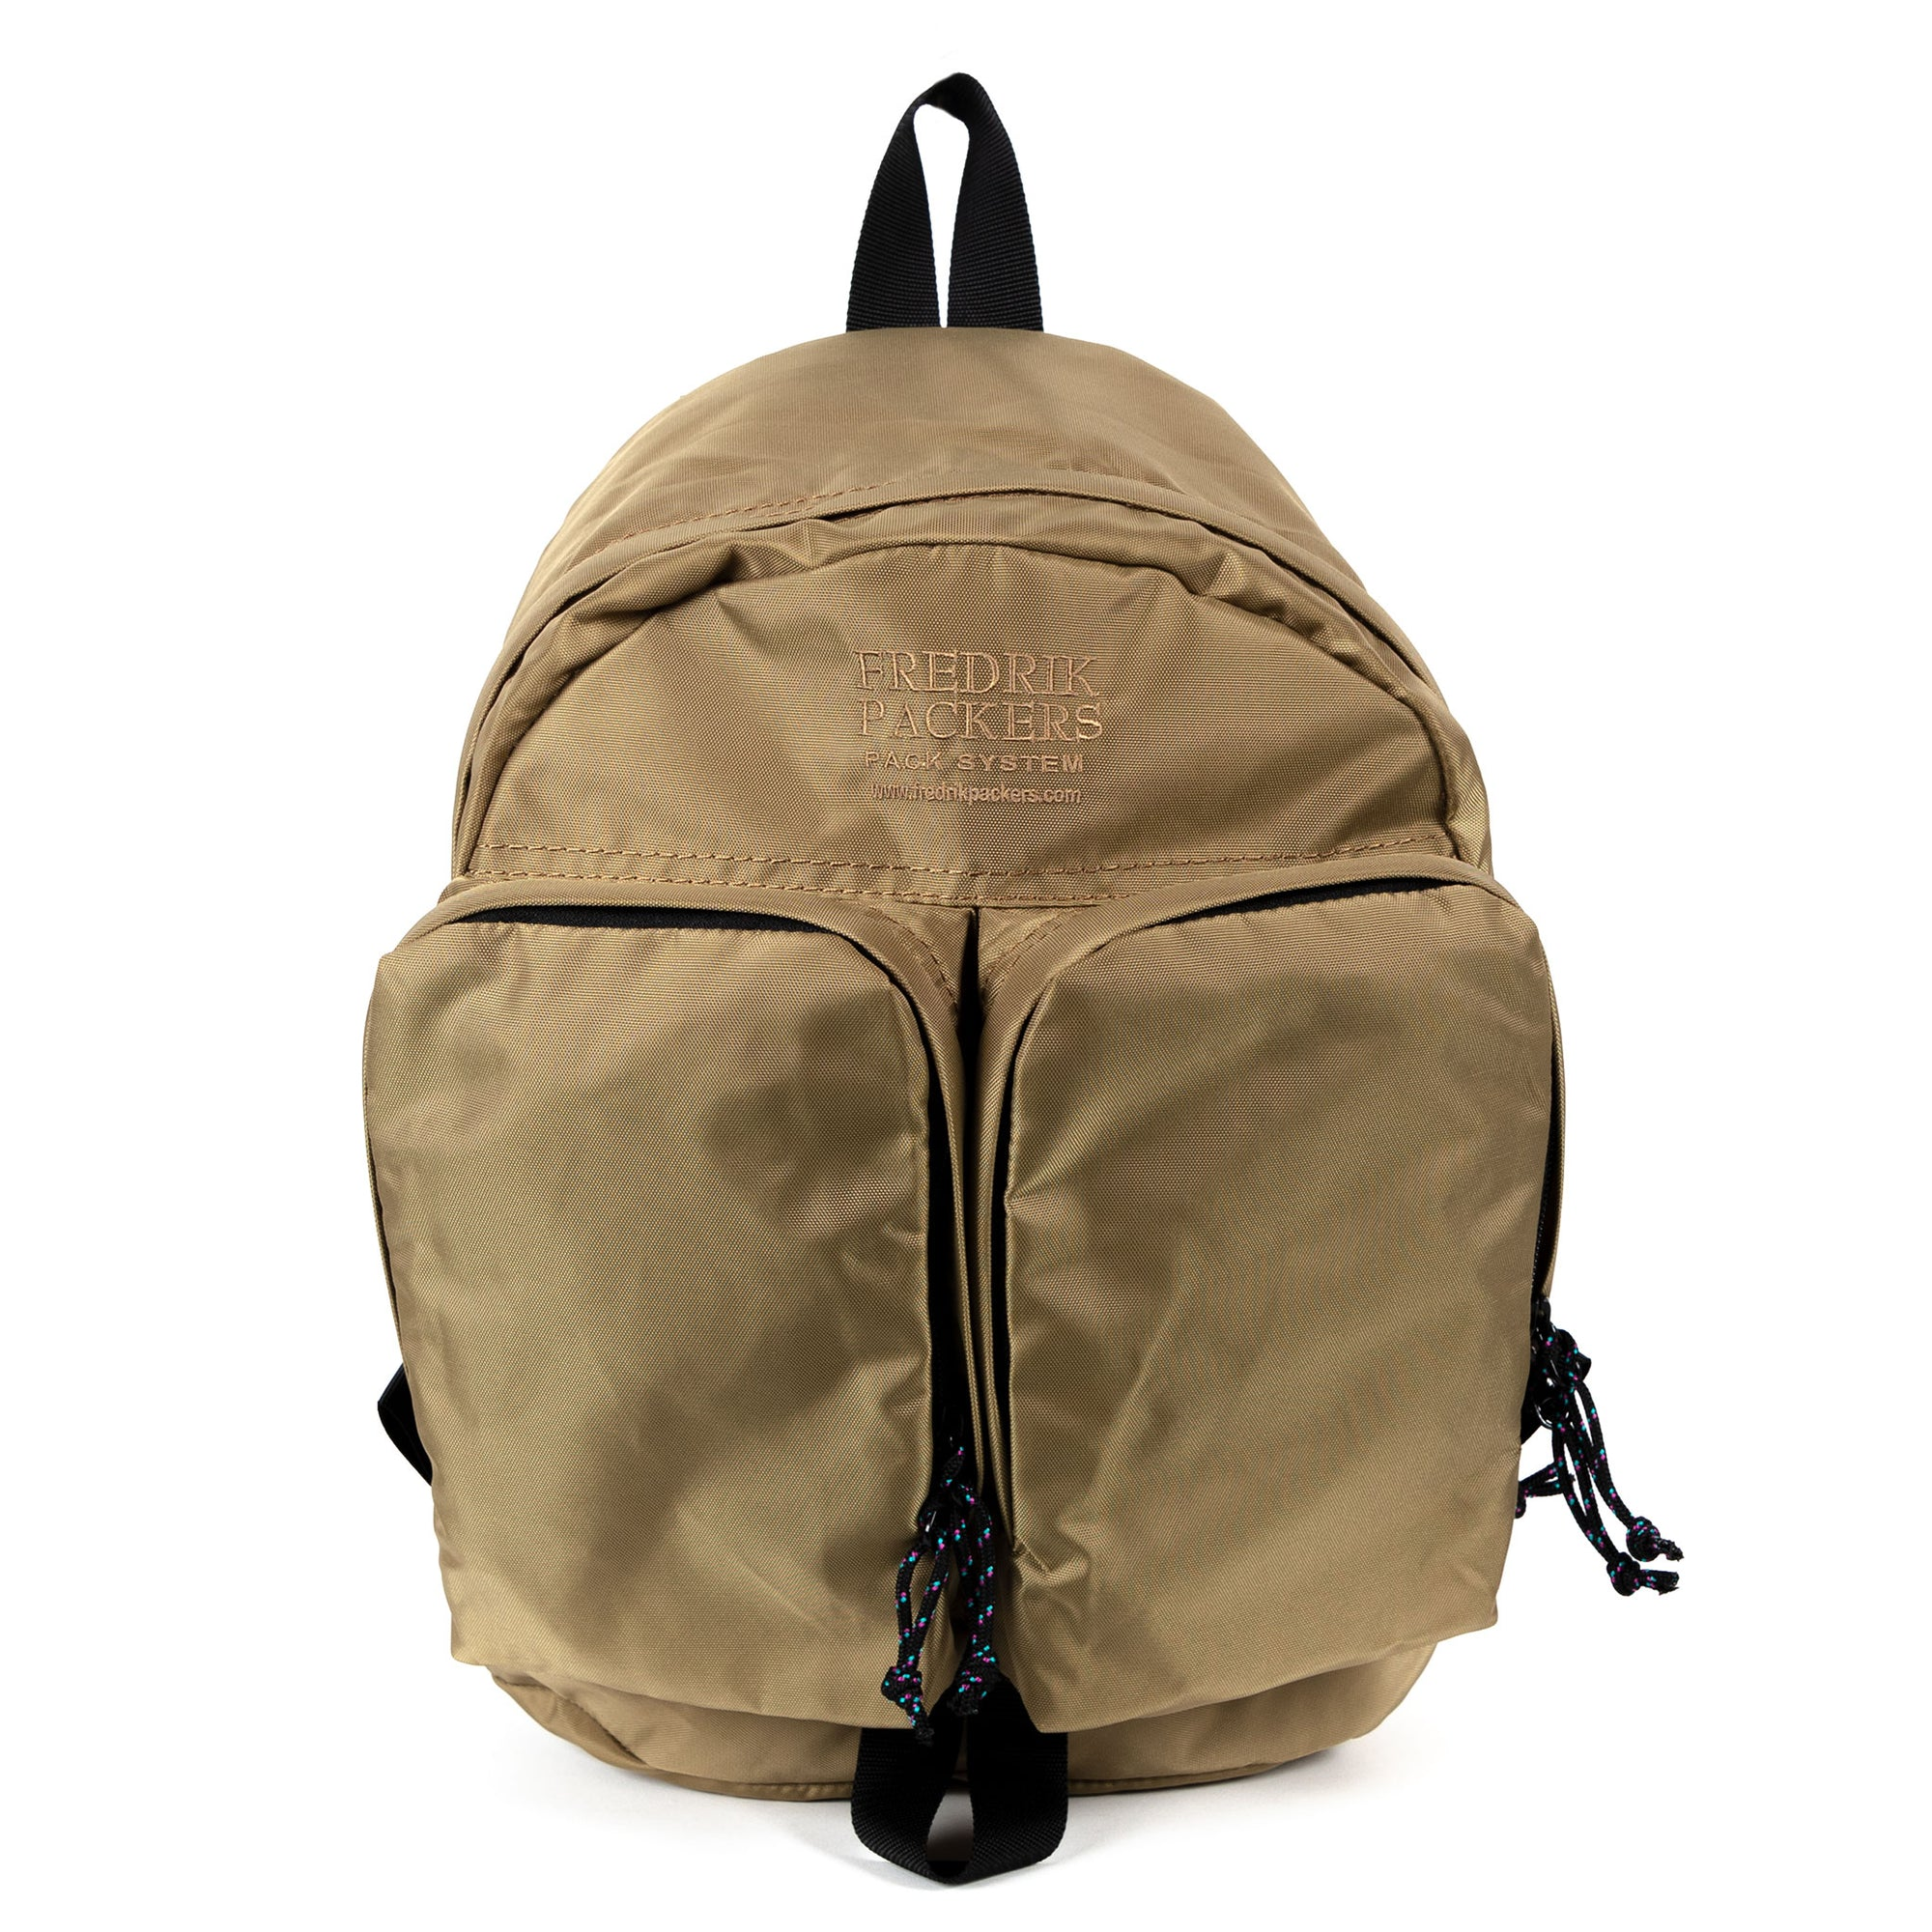 fredrik packers twins backpack in coyote